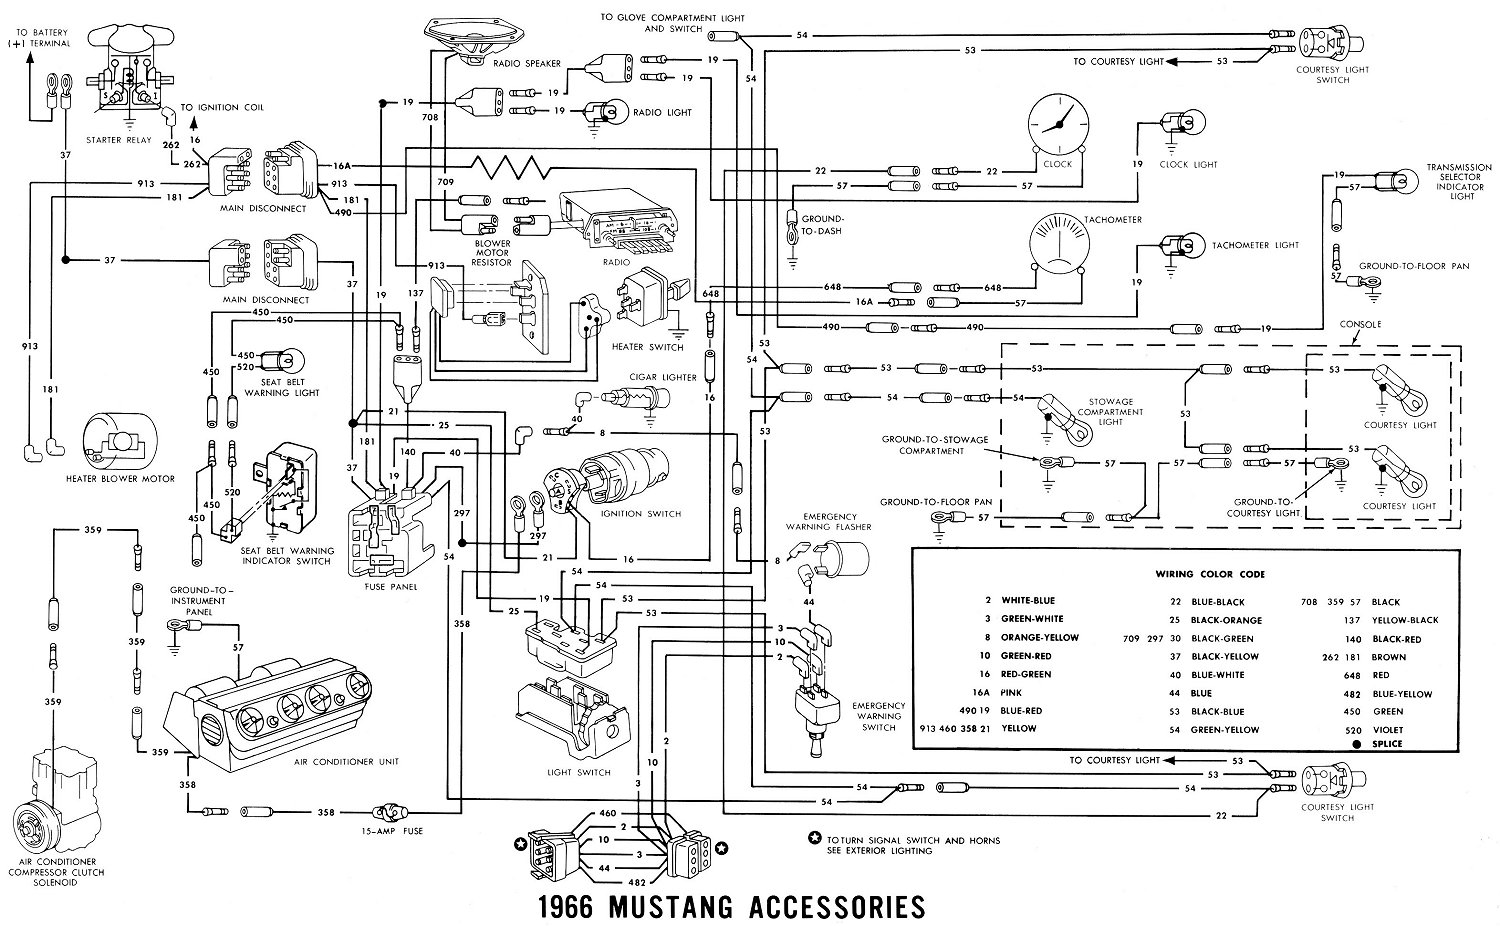 Mustang Wiring Diagram - Wiring Diagram